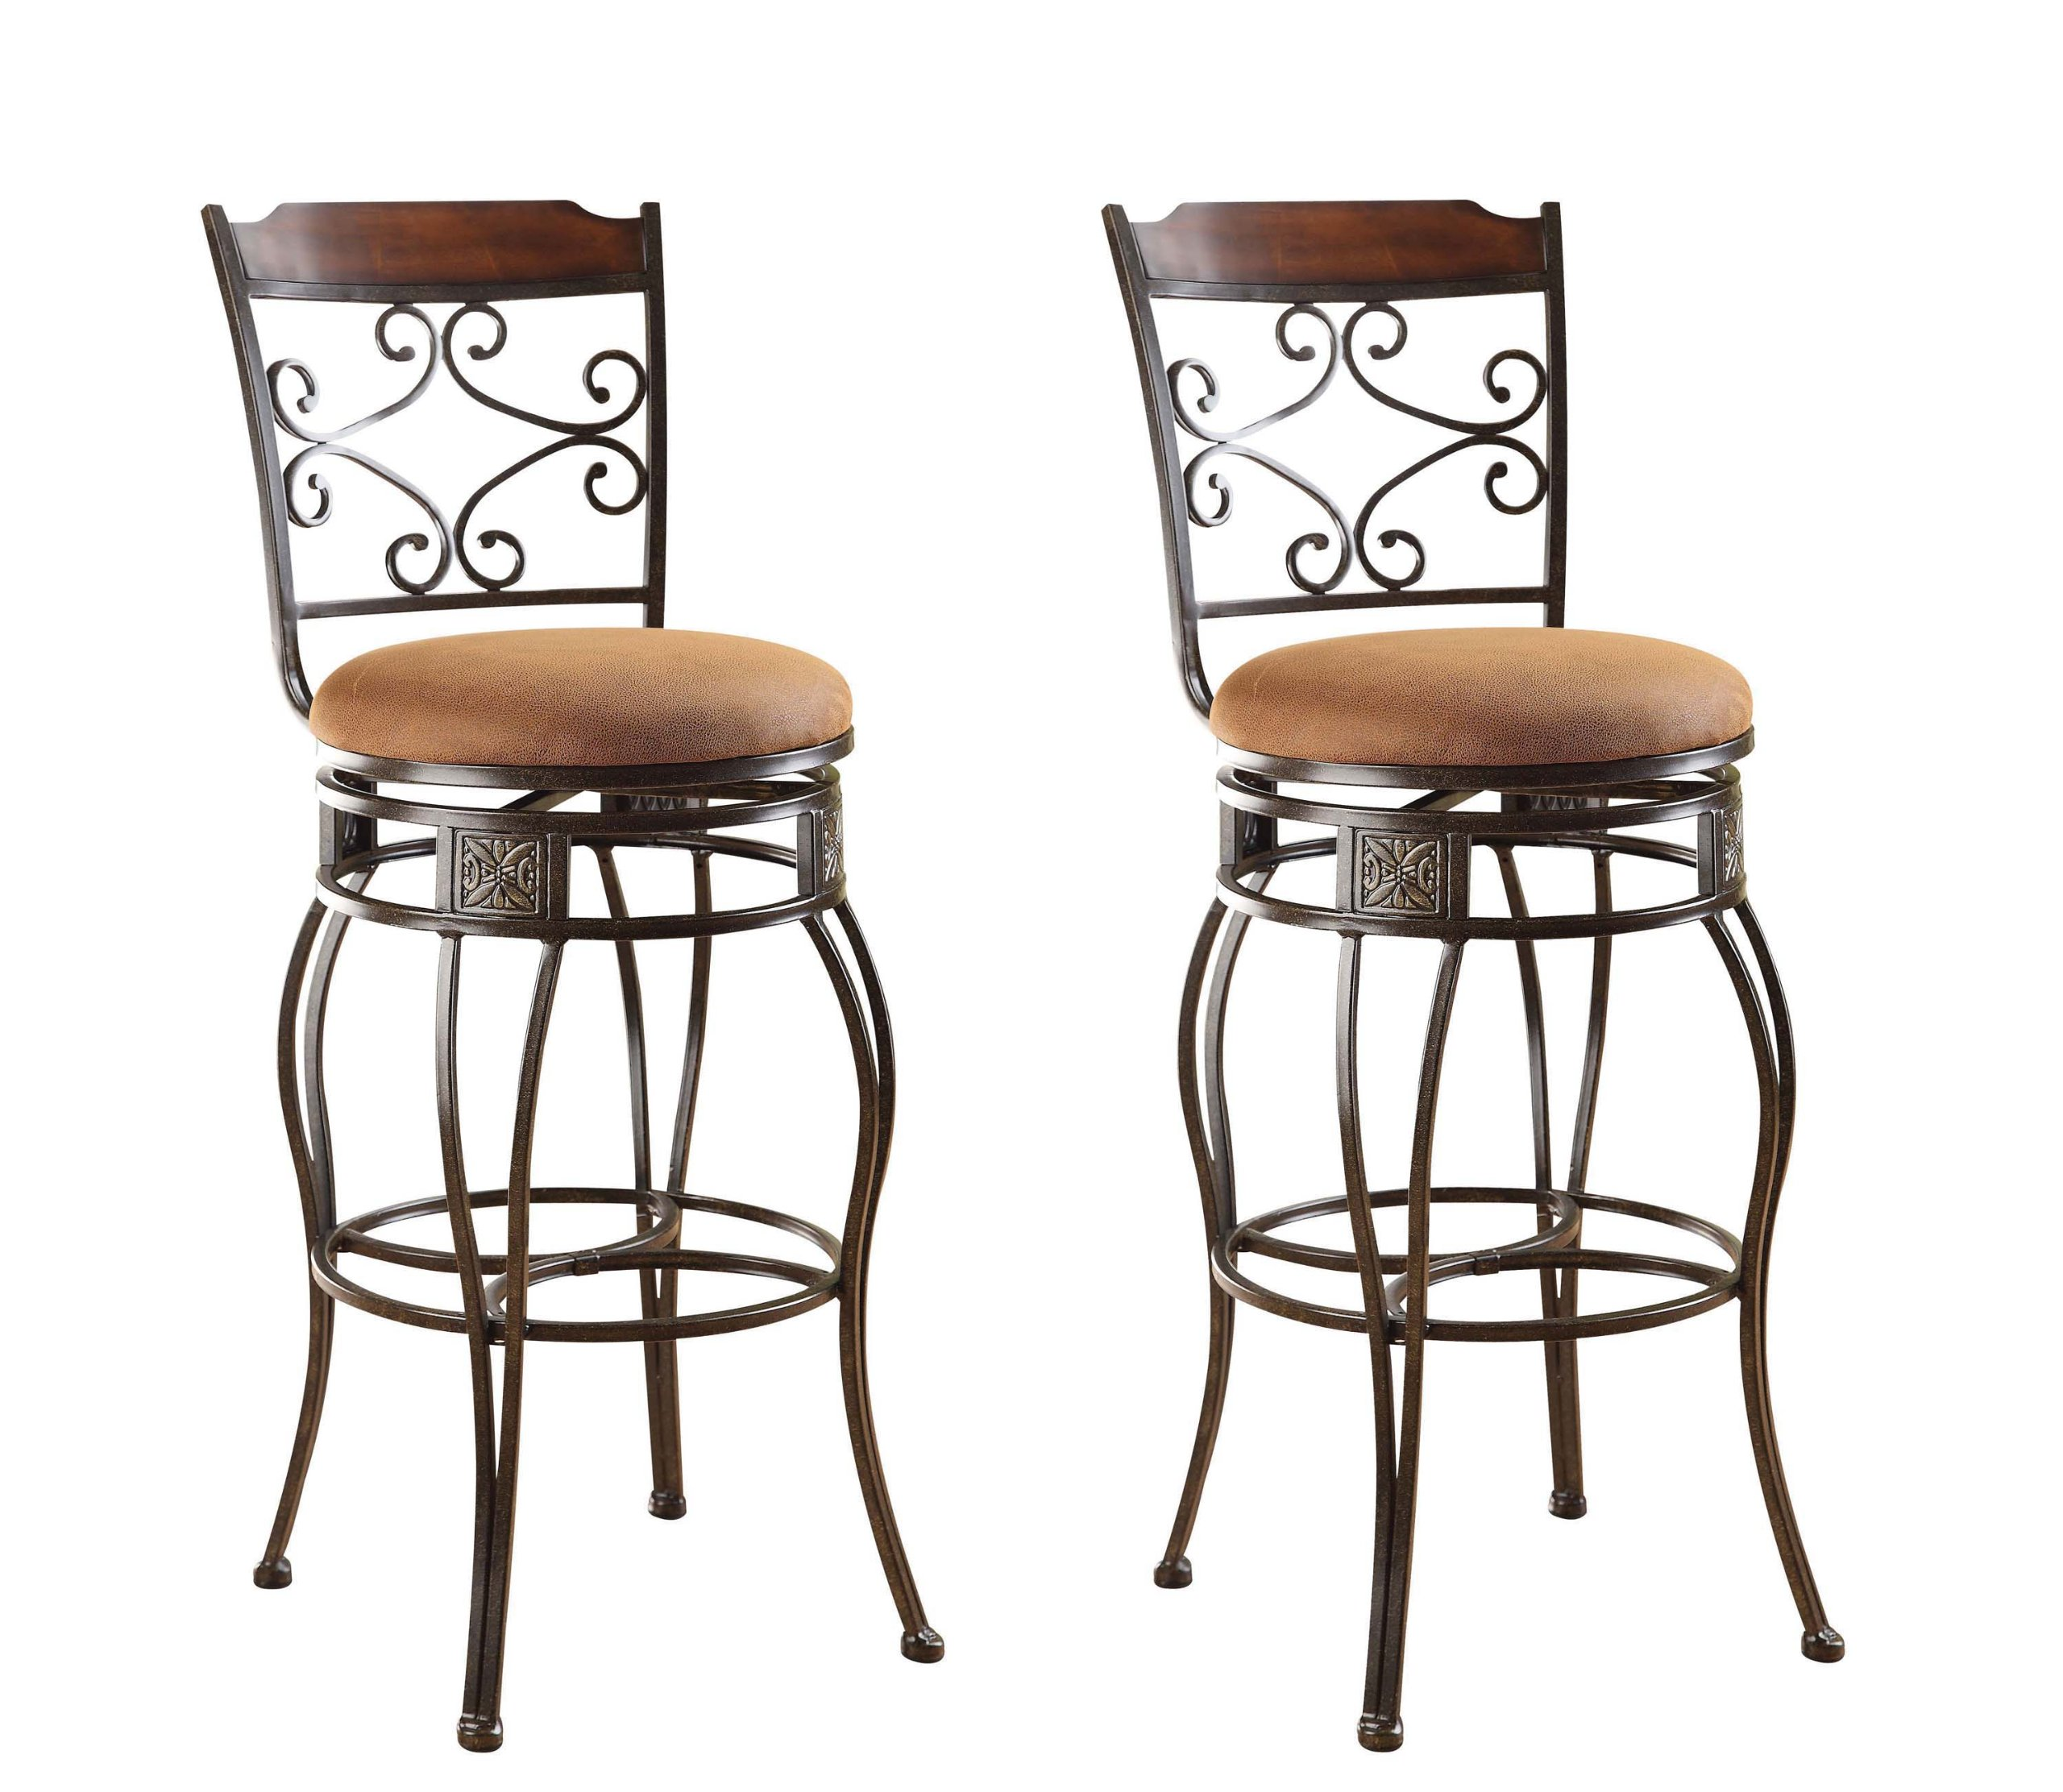 ACME 96045 Set of 2 Tavio Swivel Bar Chair, 29-Inch by ACME